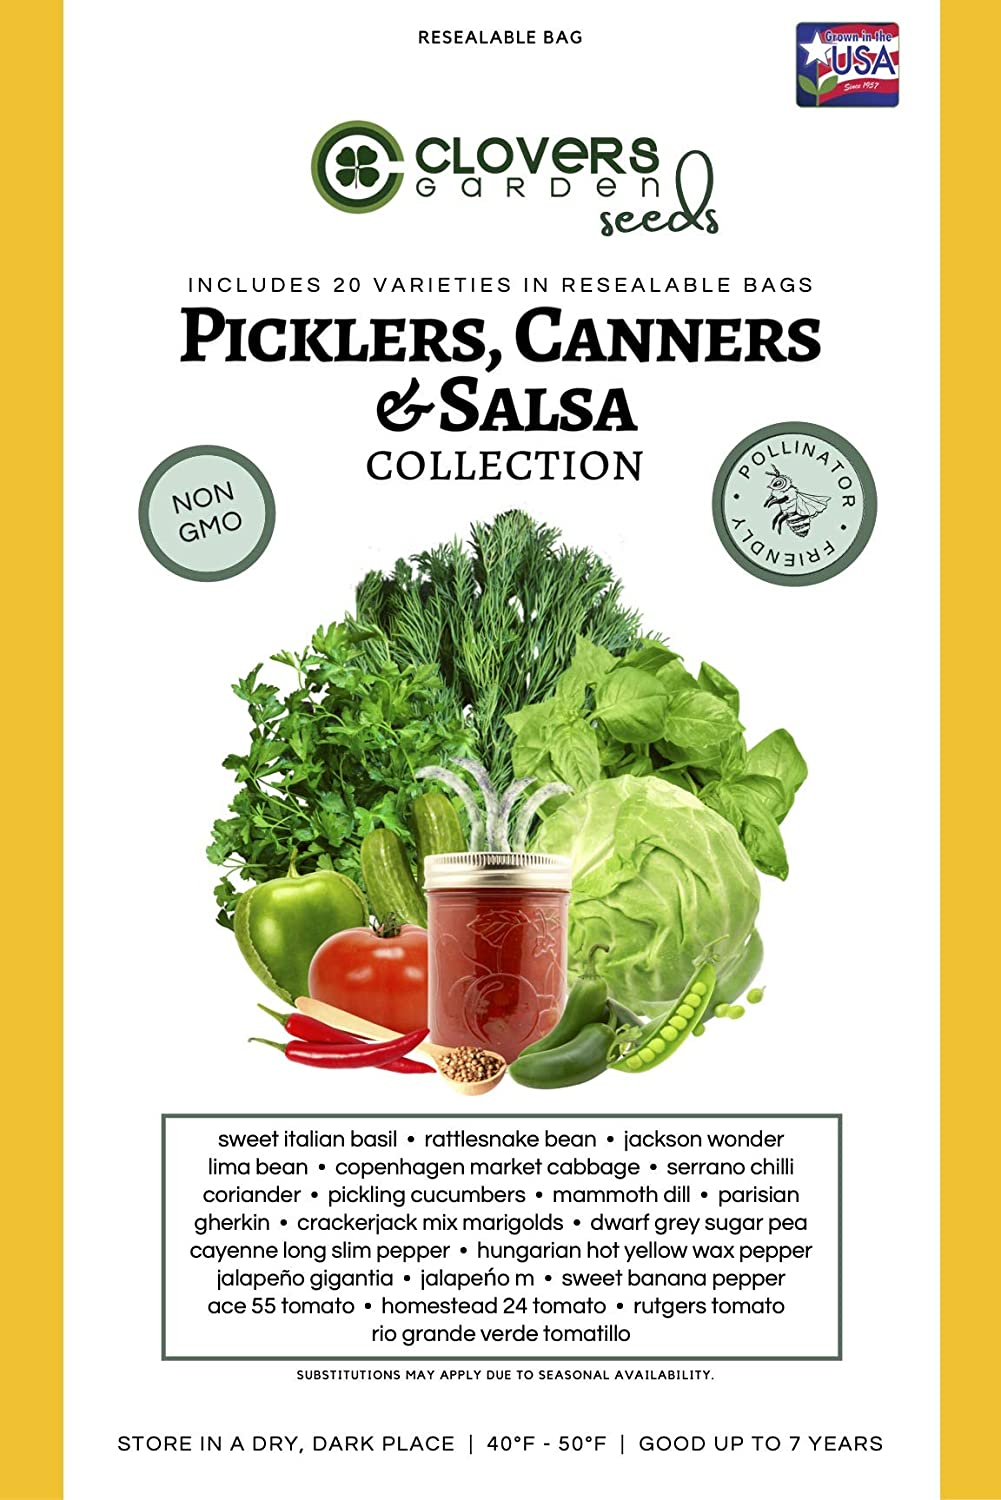 Clovers Garden Picklers, Canners & Salsa Seed Kit – 20 Varieties, 100% Non GMO Open Pollinated Heirloom Vegetable, Herb Seed Vault for Planting – USA Grown Hand Packed for Home or Survival Garden